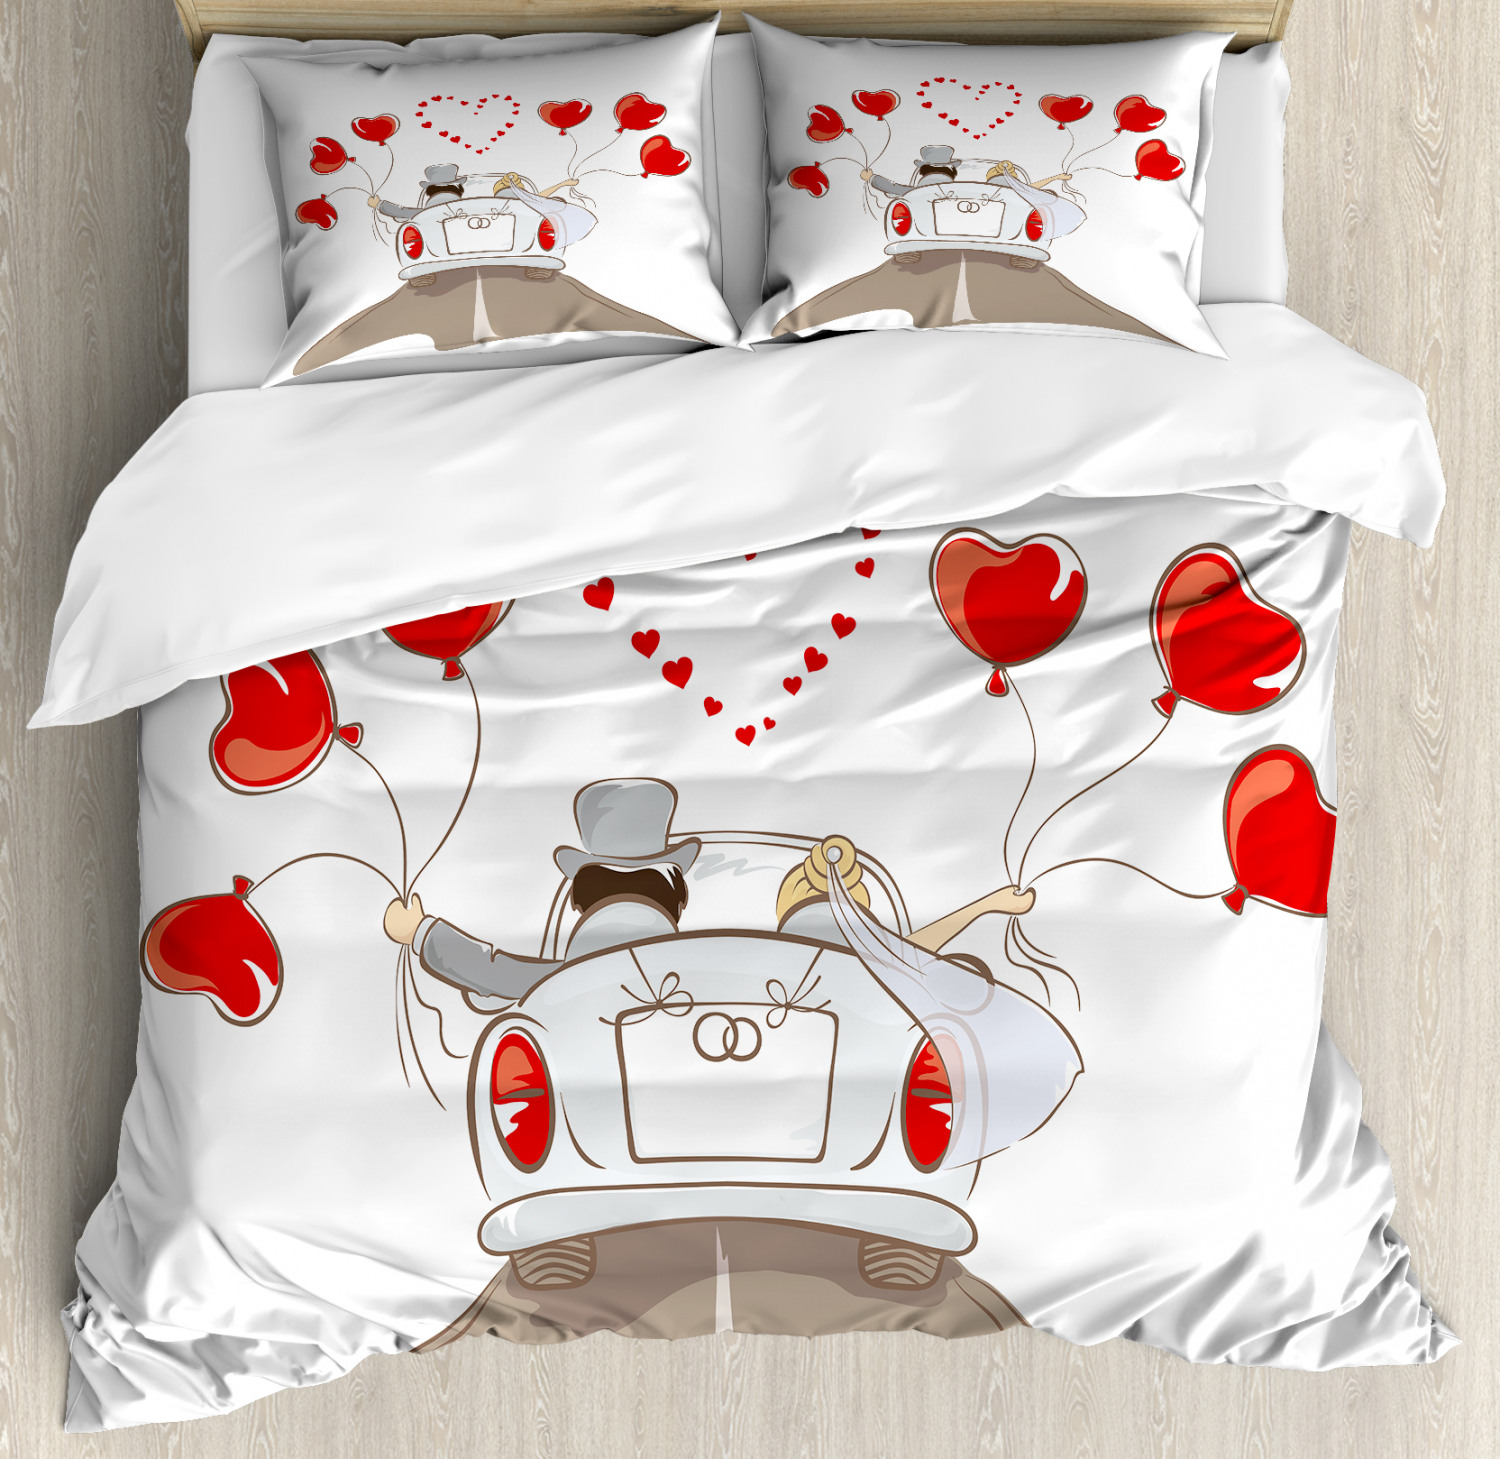 Romance Duvet Cover Set with Pillow Shams Newlywed Couple in Car Print